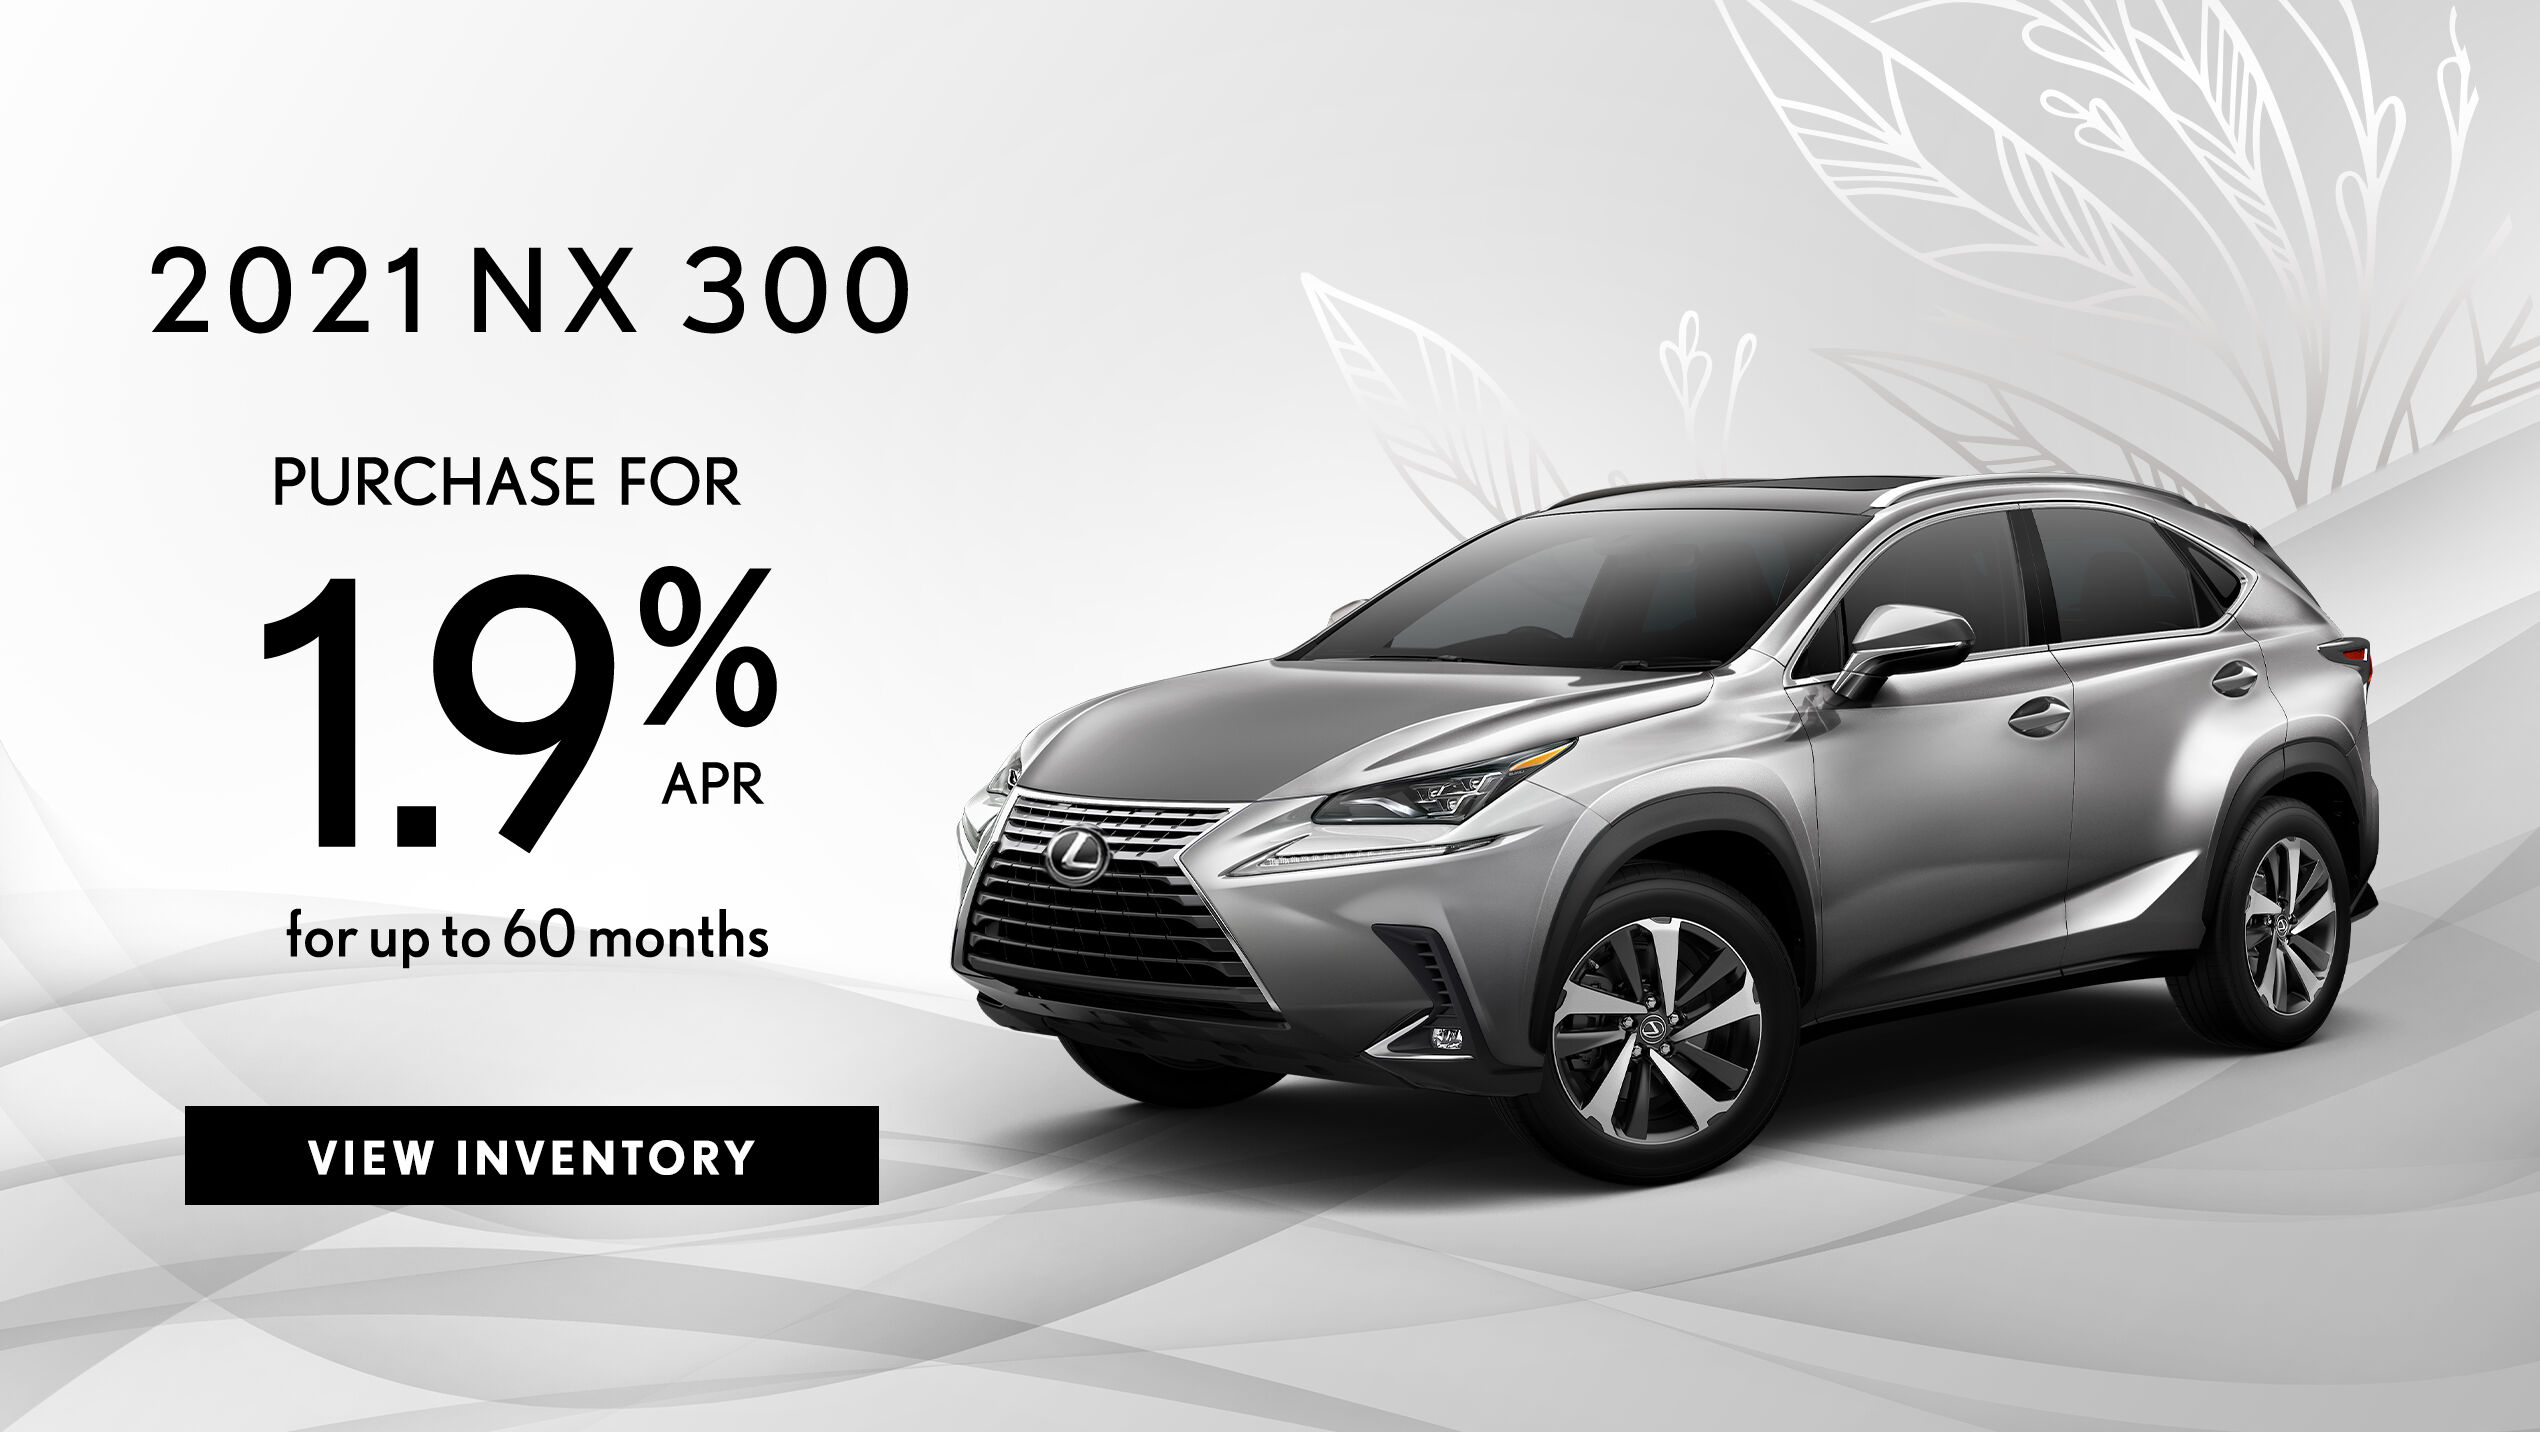 Take advantage of 1.9% APR for up to 60 months on a new 2021 NX 300.